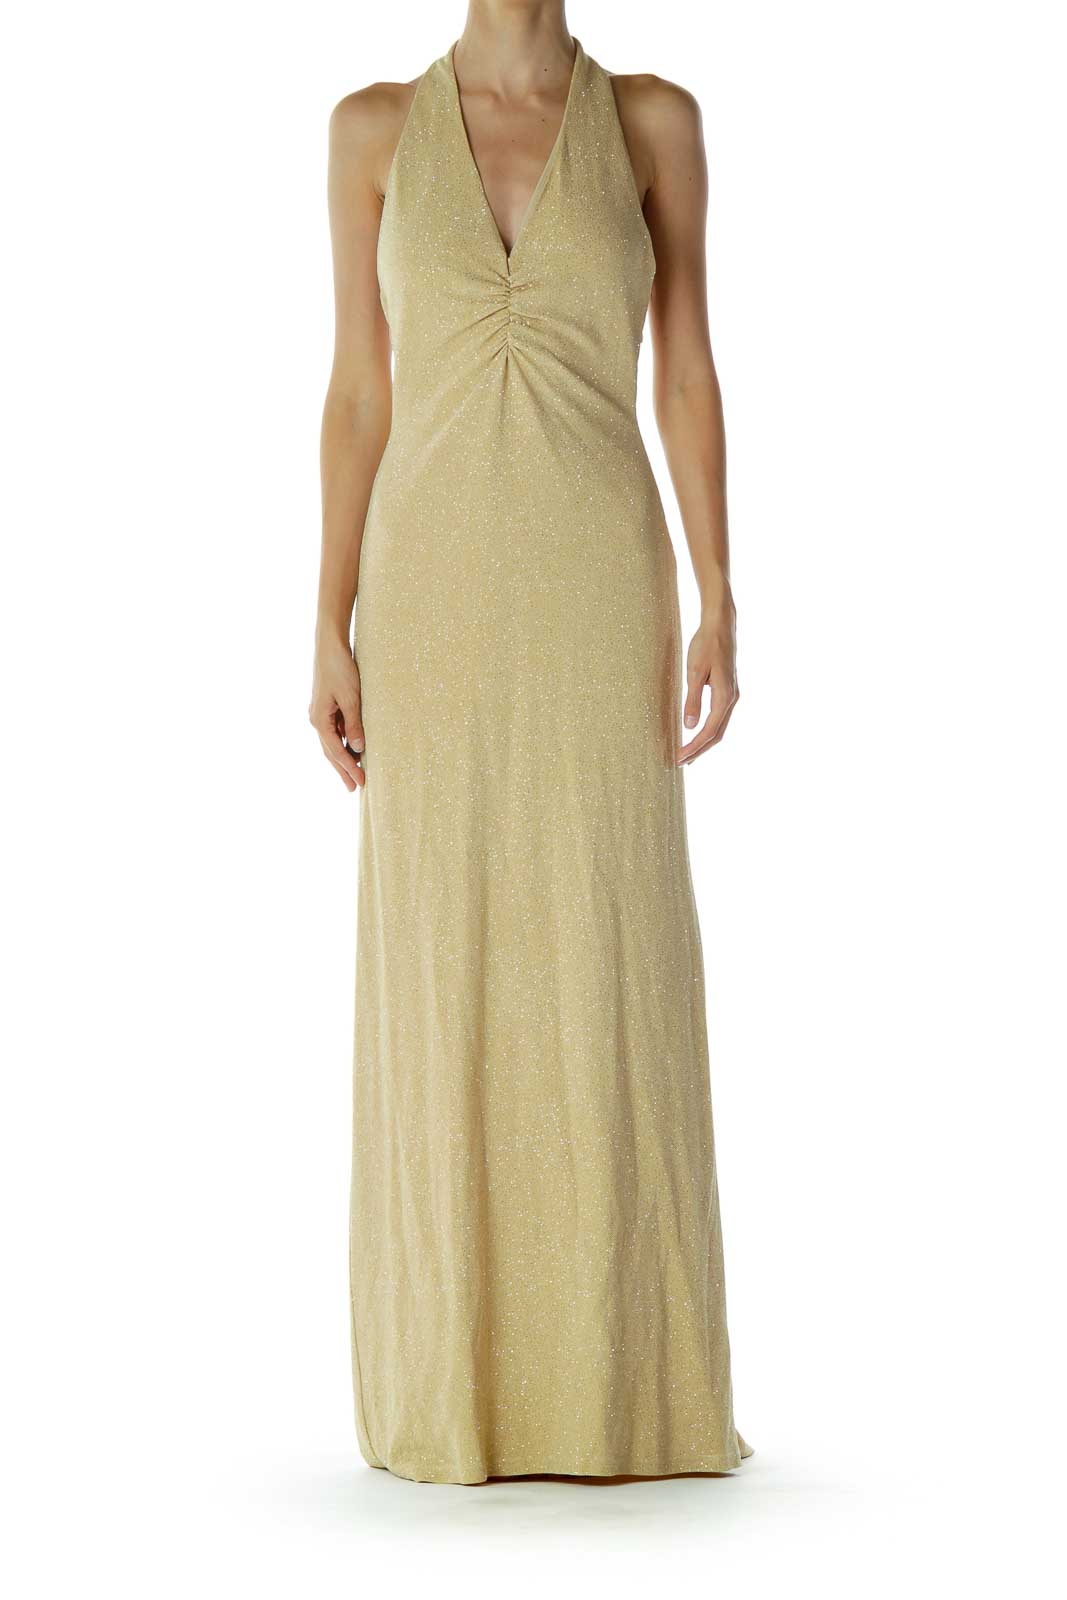 Gold Sparkly Evening Dress Front